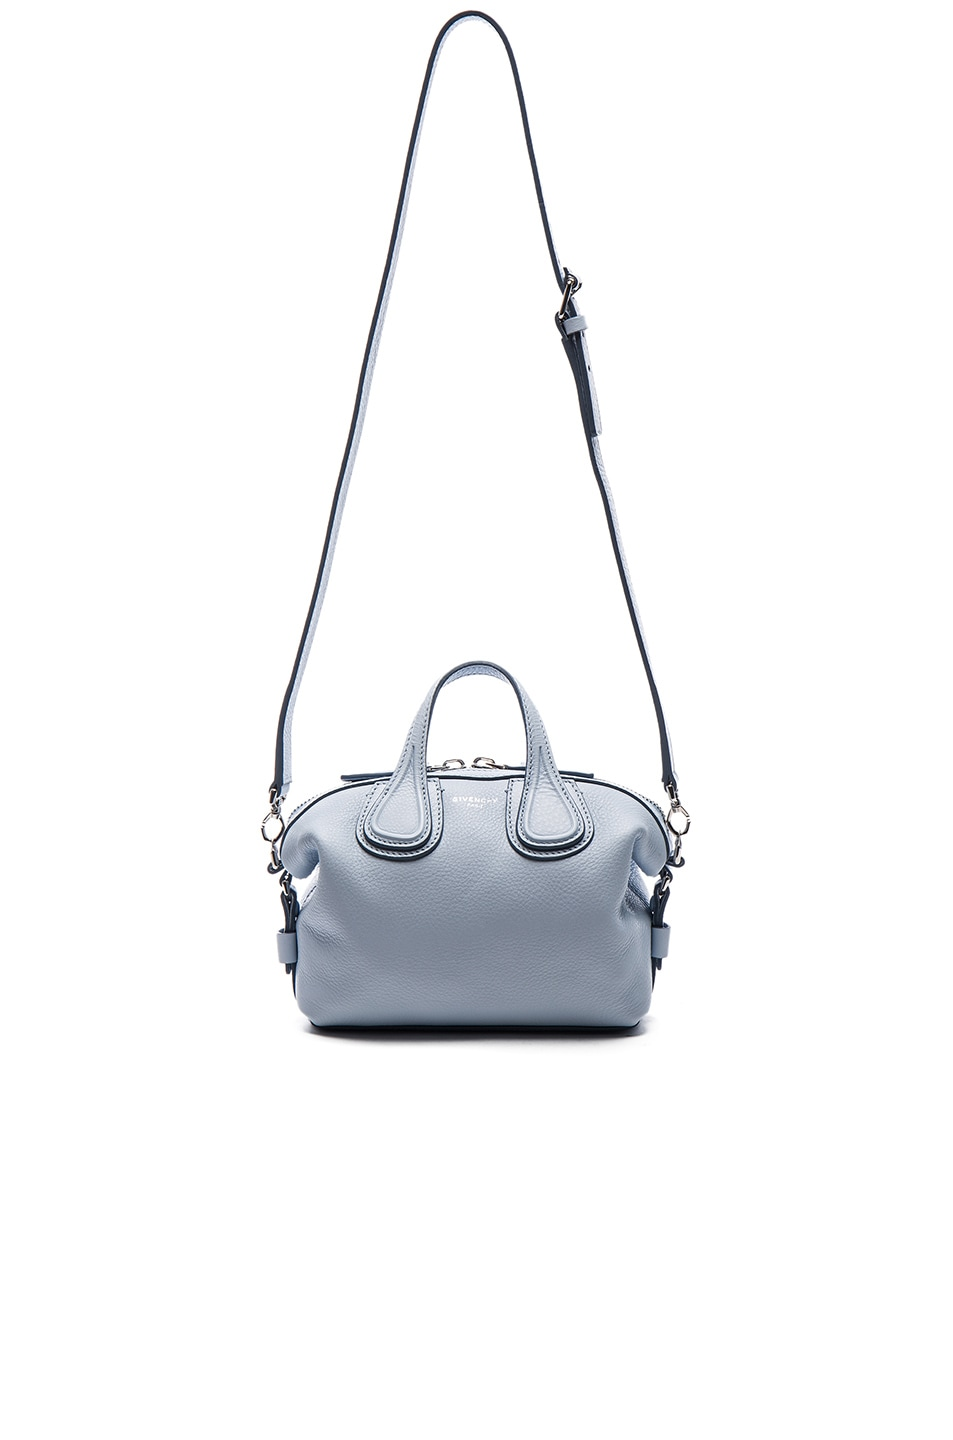 fbcf03ca819af Image 1 of Givenchy Micro Nightingale in Light Blue